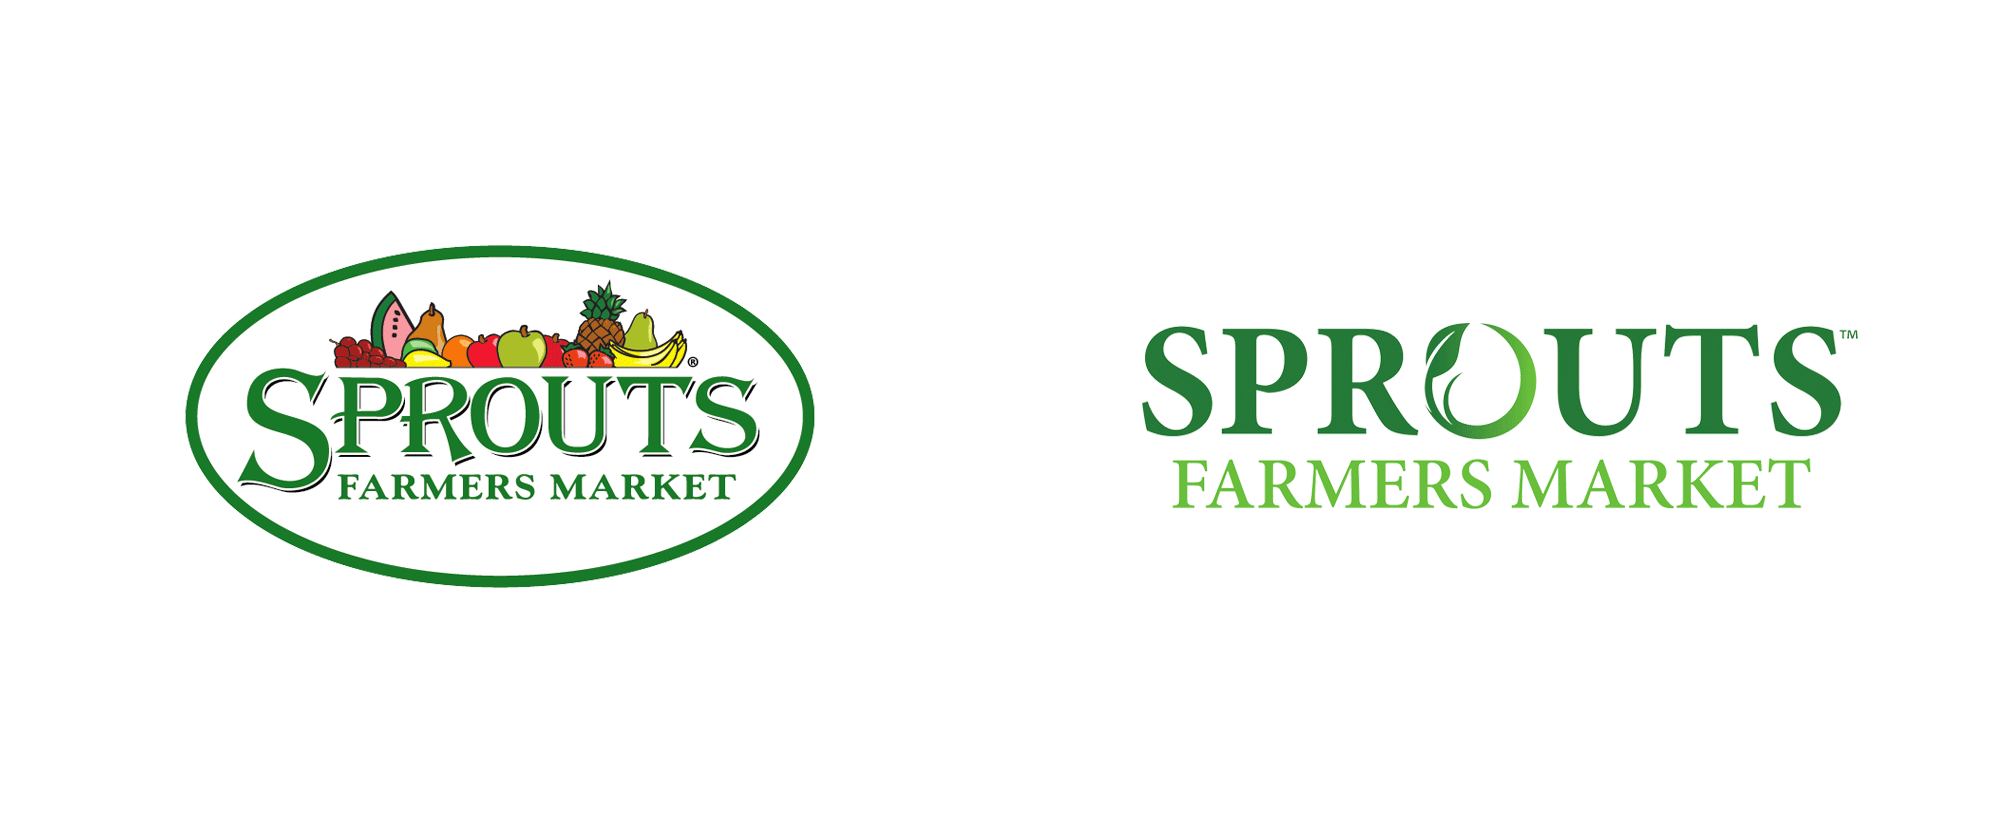 New Logo for Sprouts Farmers Market